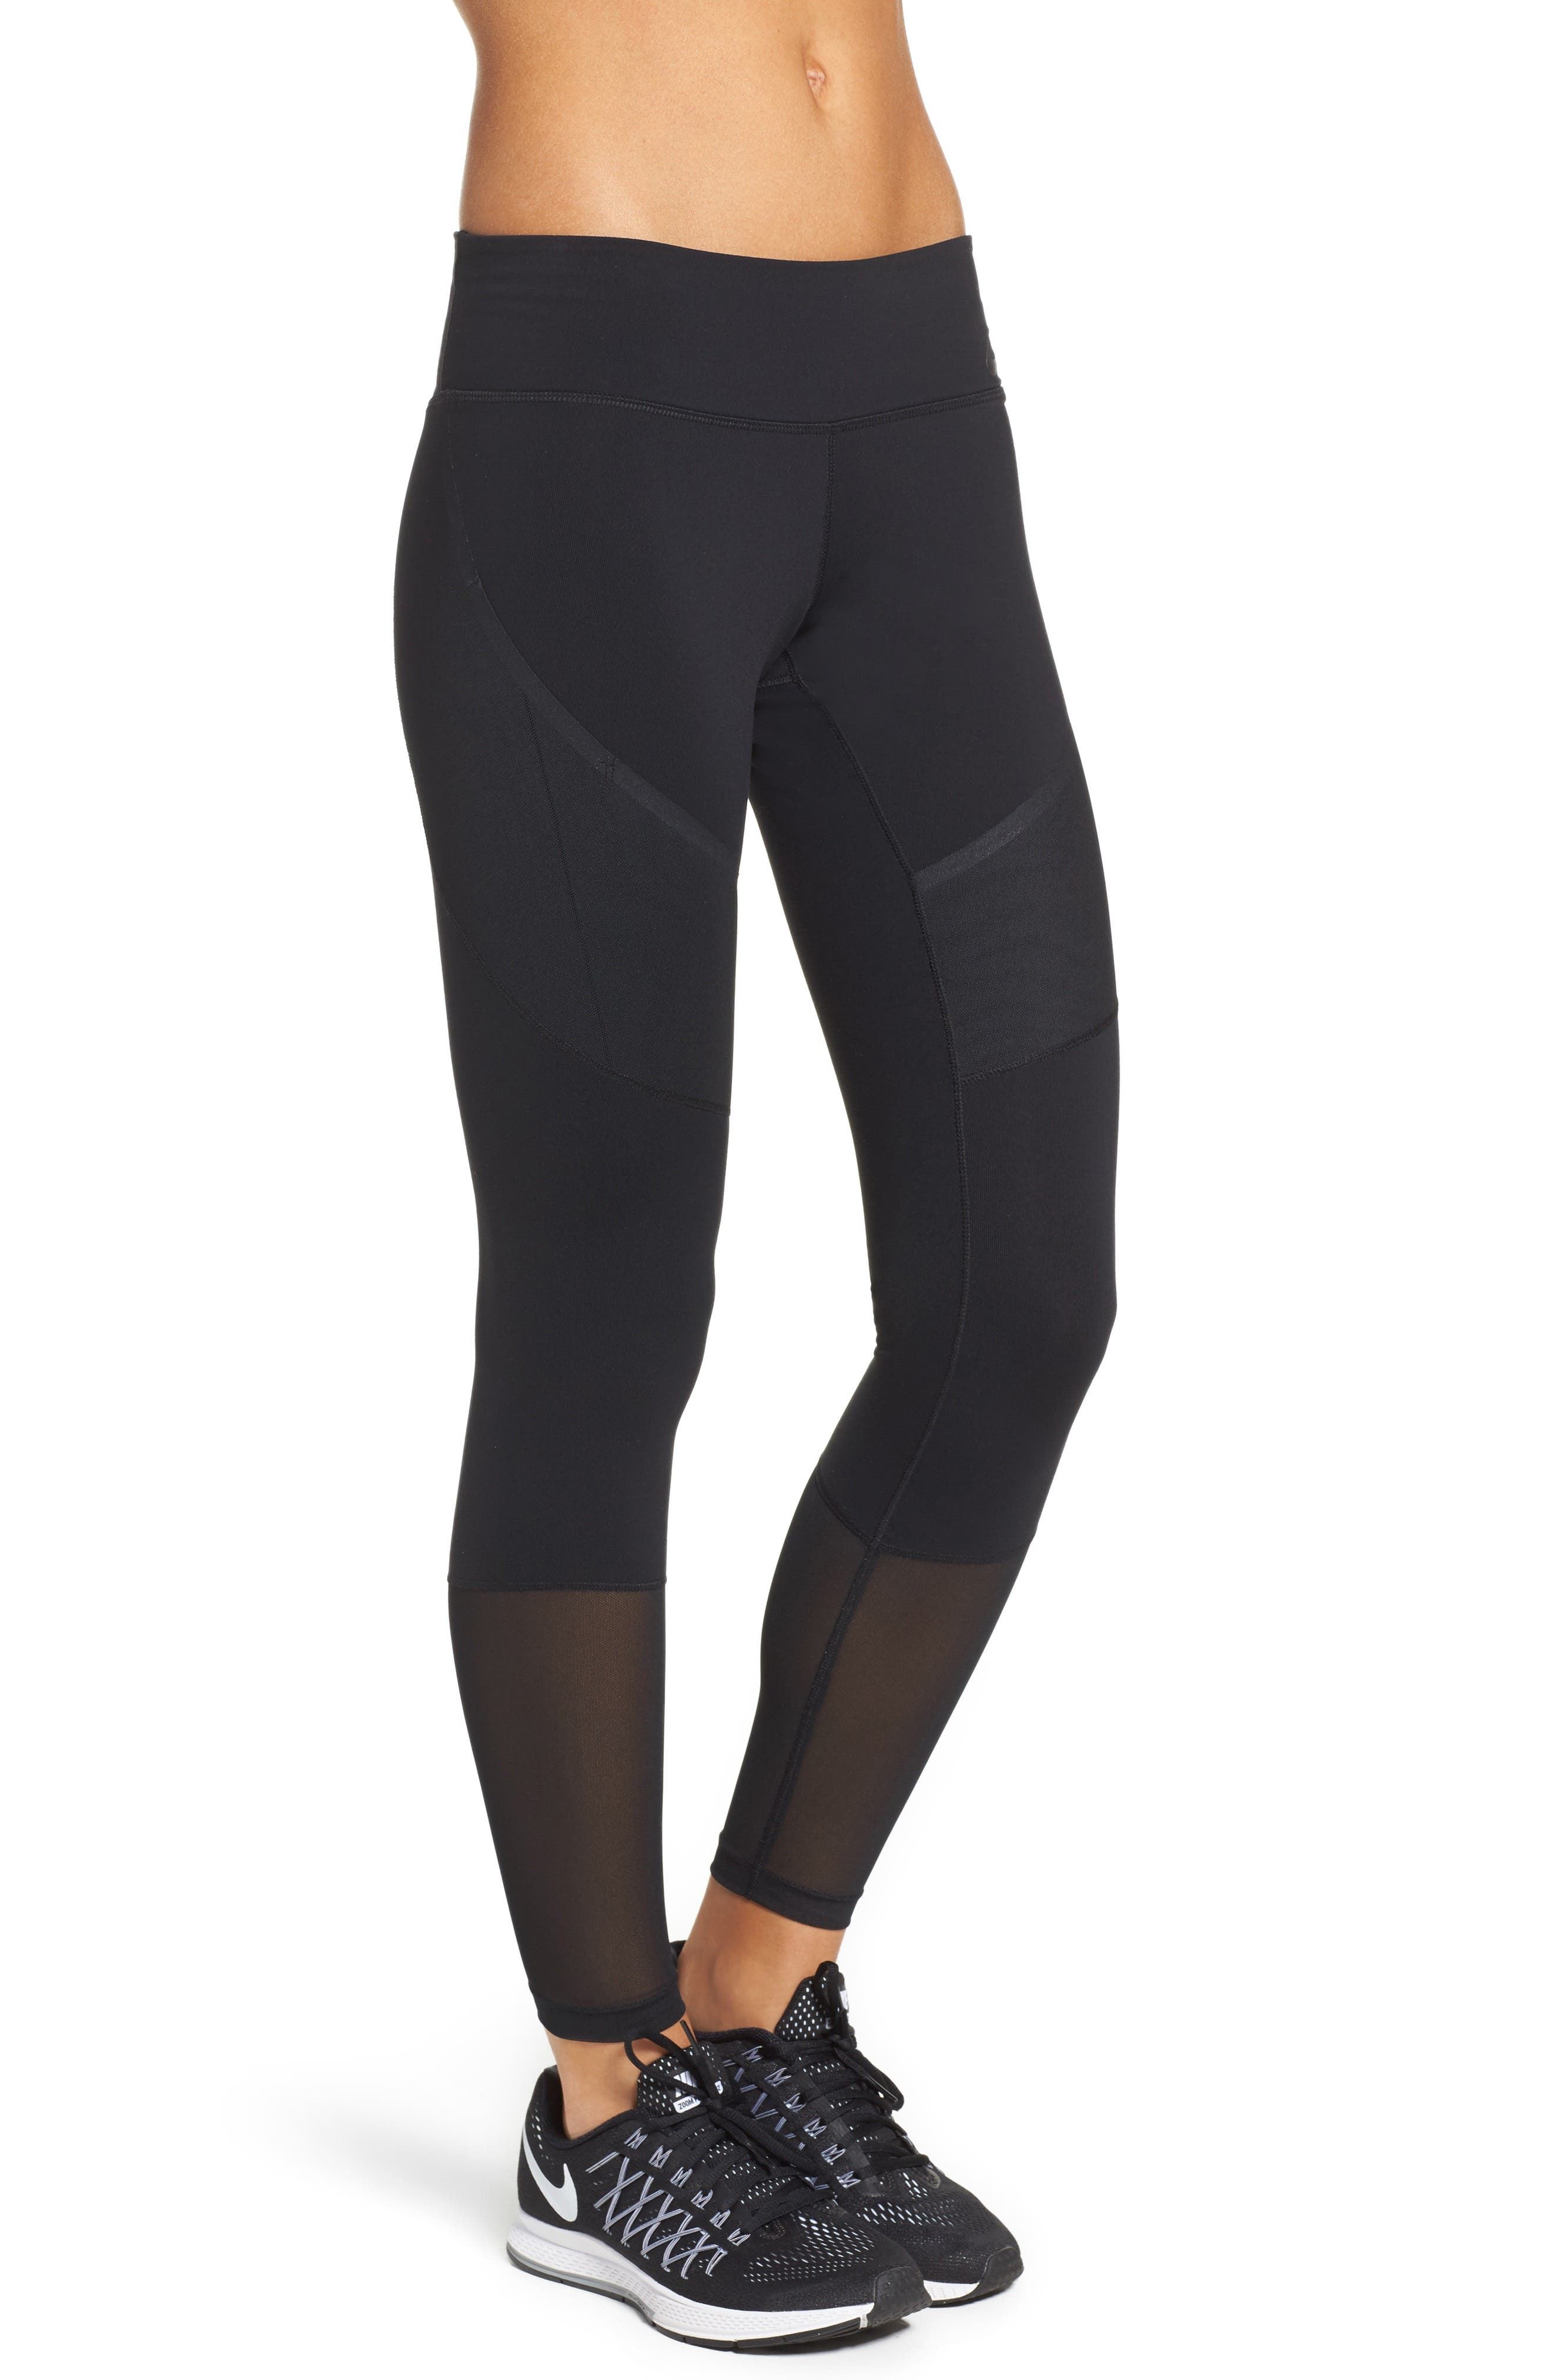 Power Legendary Training Tights,                             Alternate thumbnail 3, color,                             010